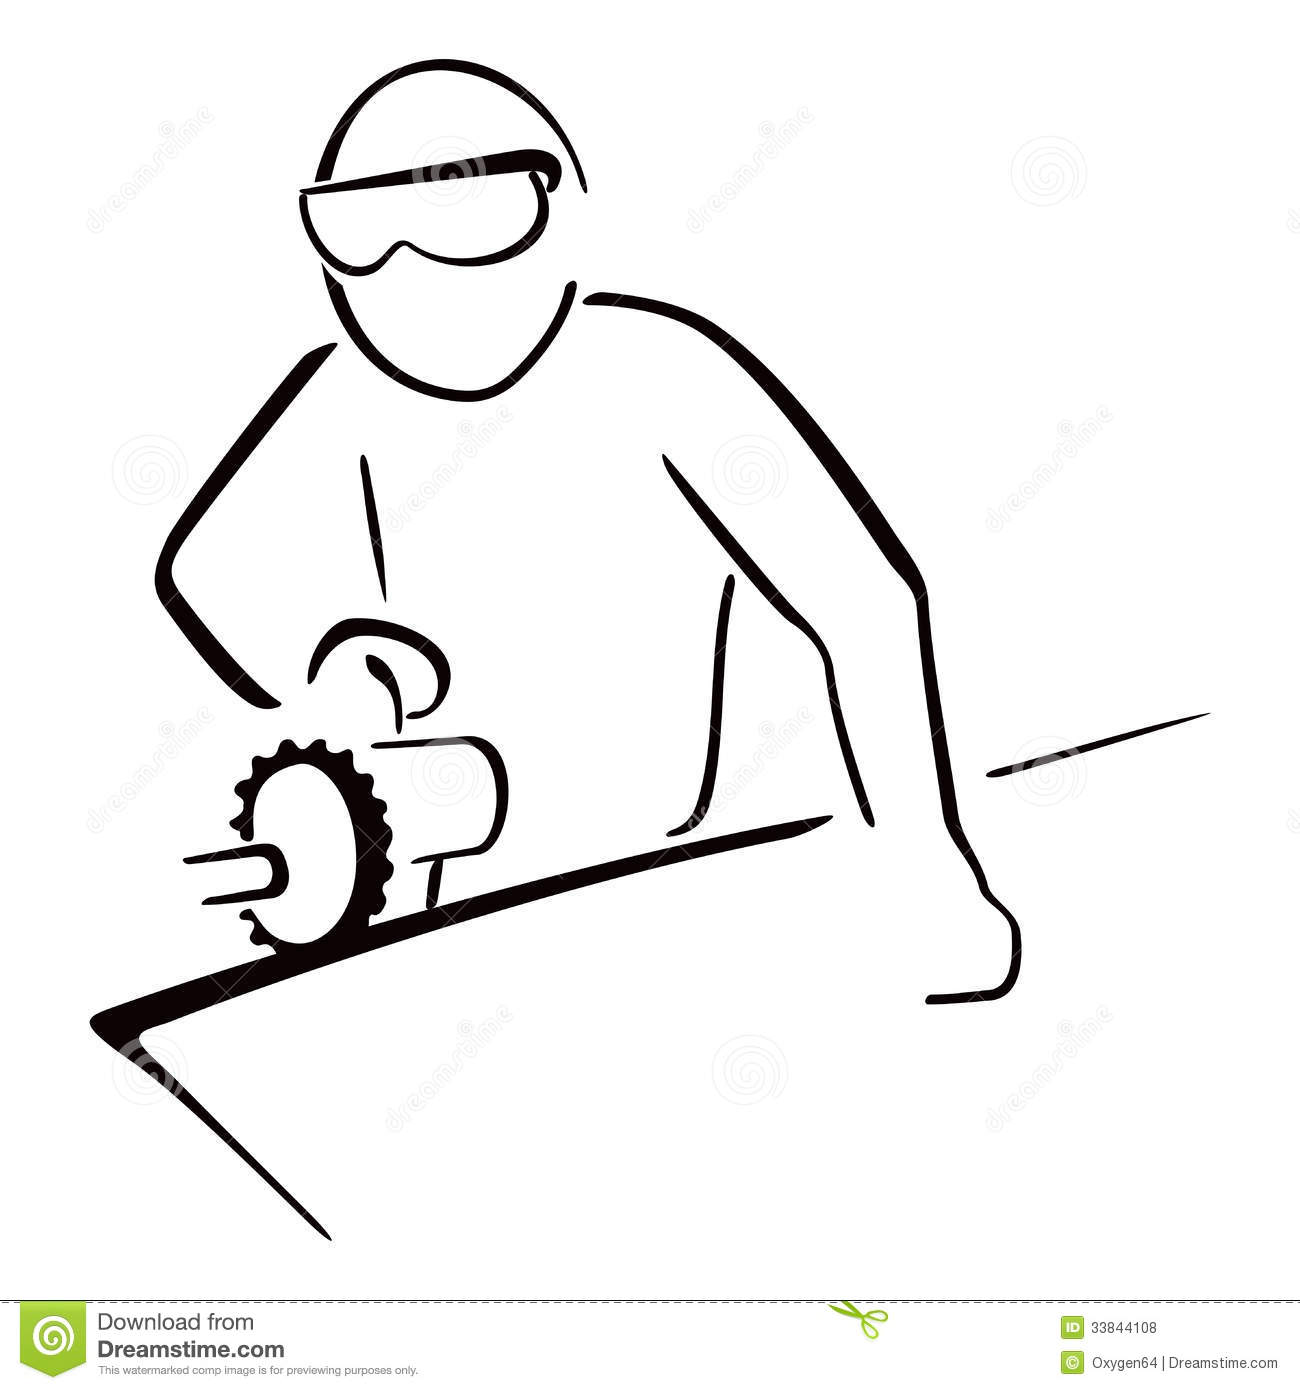 Royalty Free Stock Photos Industrial Worker Carpenter Work Using Electric Saw Tool Image33844108 further Texas Judiciary Organizational Chart together with 19721 besides E1M4   mand Control  Doom together with Monture Lu te Ray Ban Aviator. on refinery map